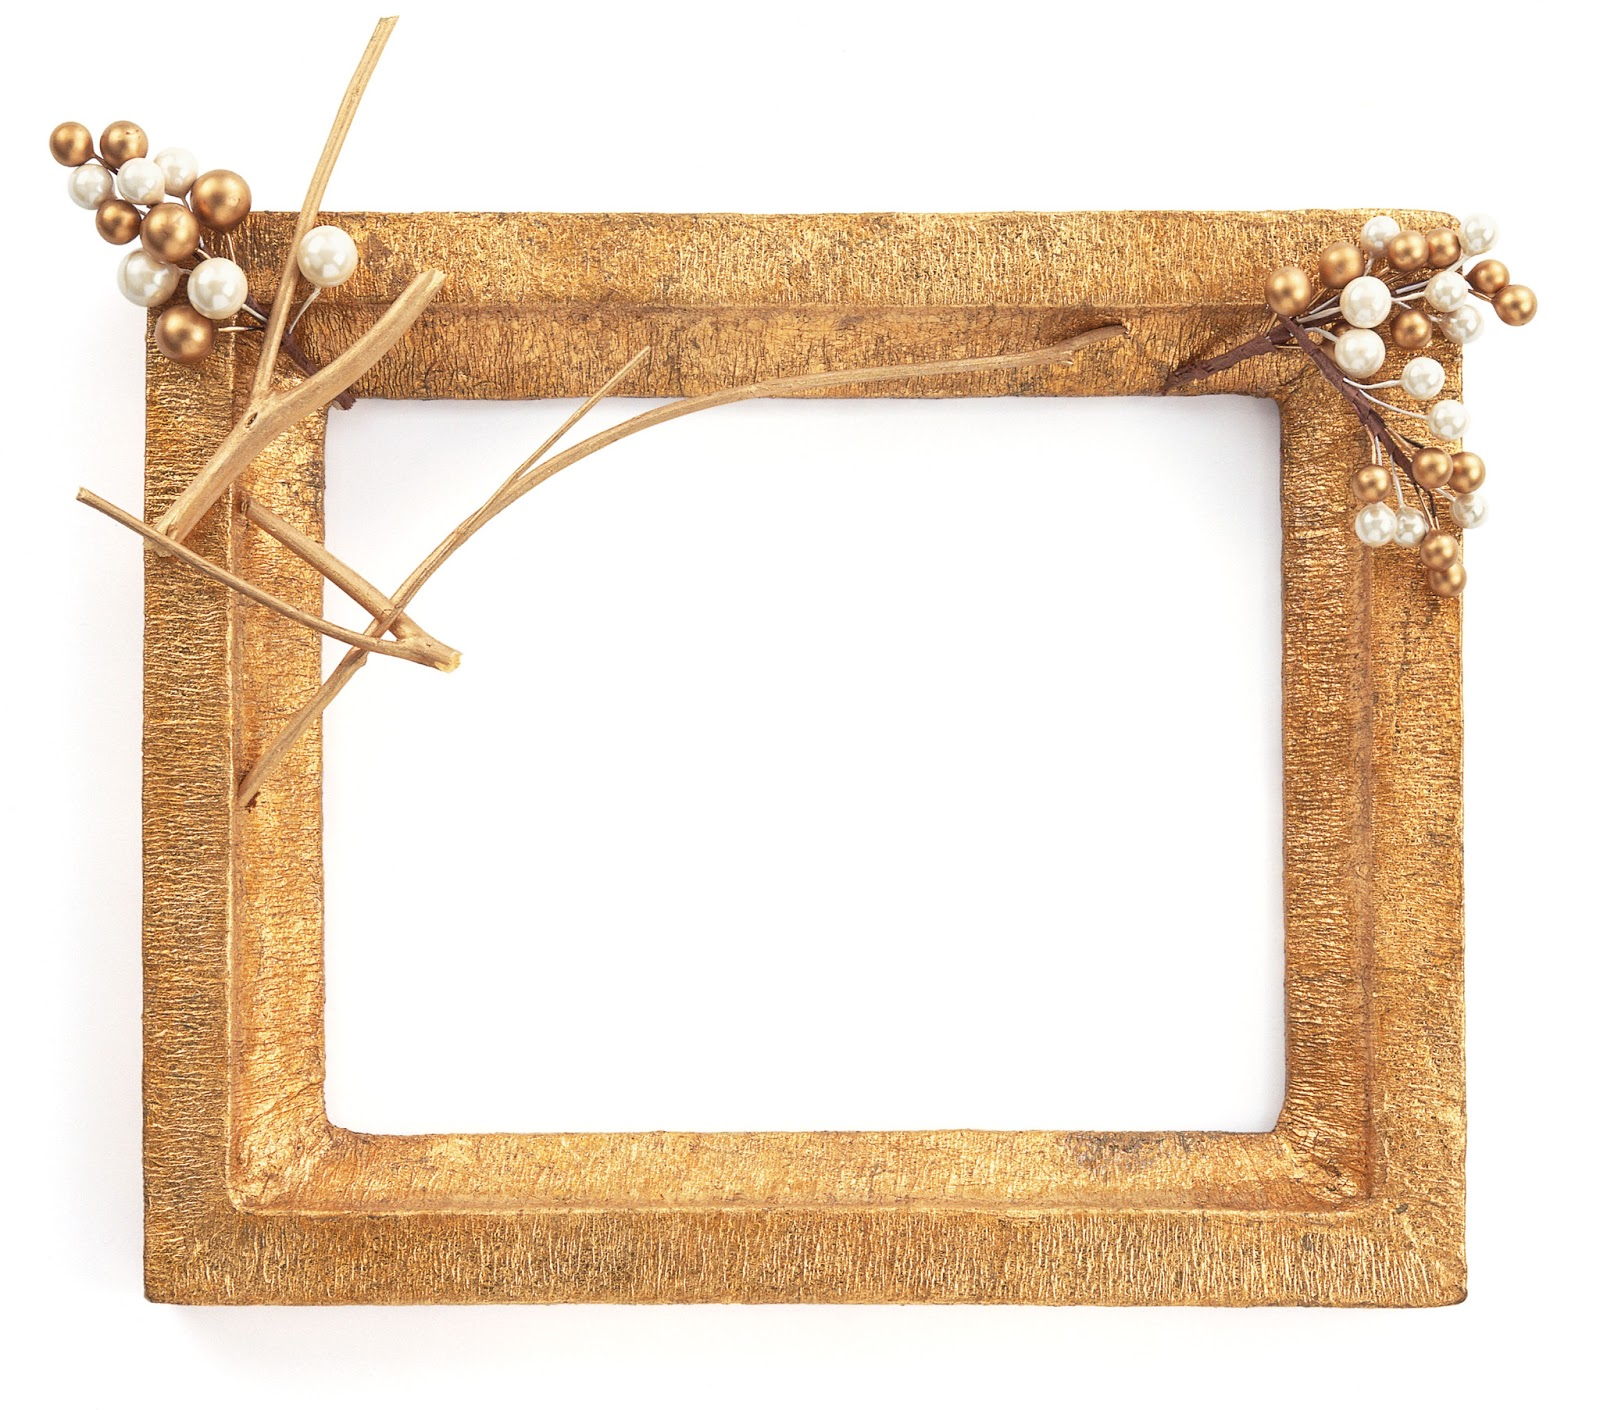 Free Download High-quality Photo Frame Templates - Computers ...